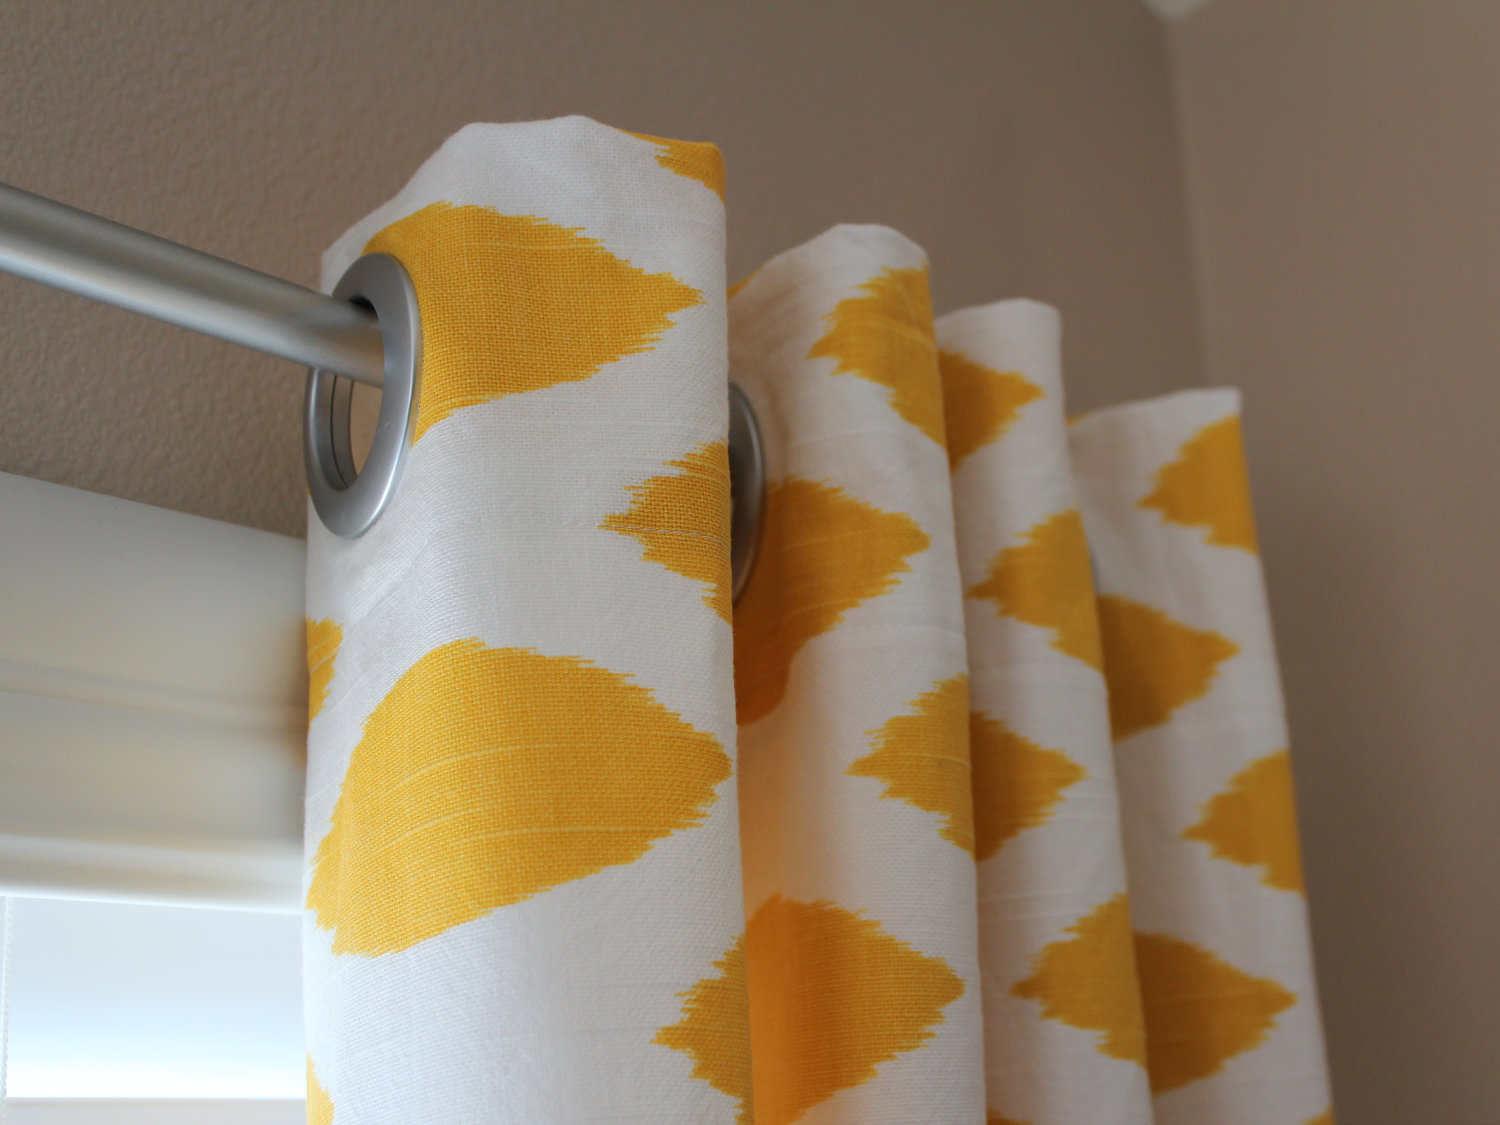 yellow-geomatri-curtain-panels-for-modern-interior-furniture-decor-idea-beautiful-curtain-panels-for-your-interior-furniture-decor-idea-modern-curtain-panels-blackout-curtains-velvet